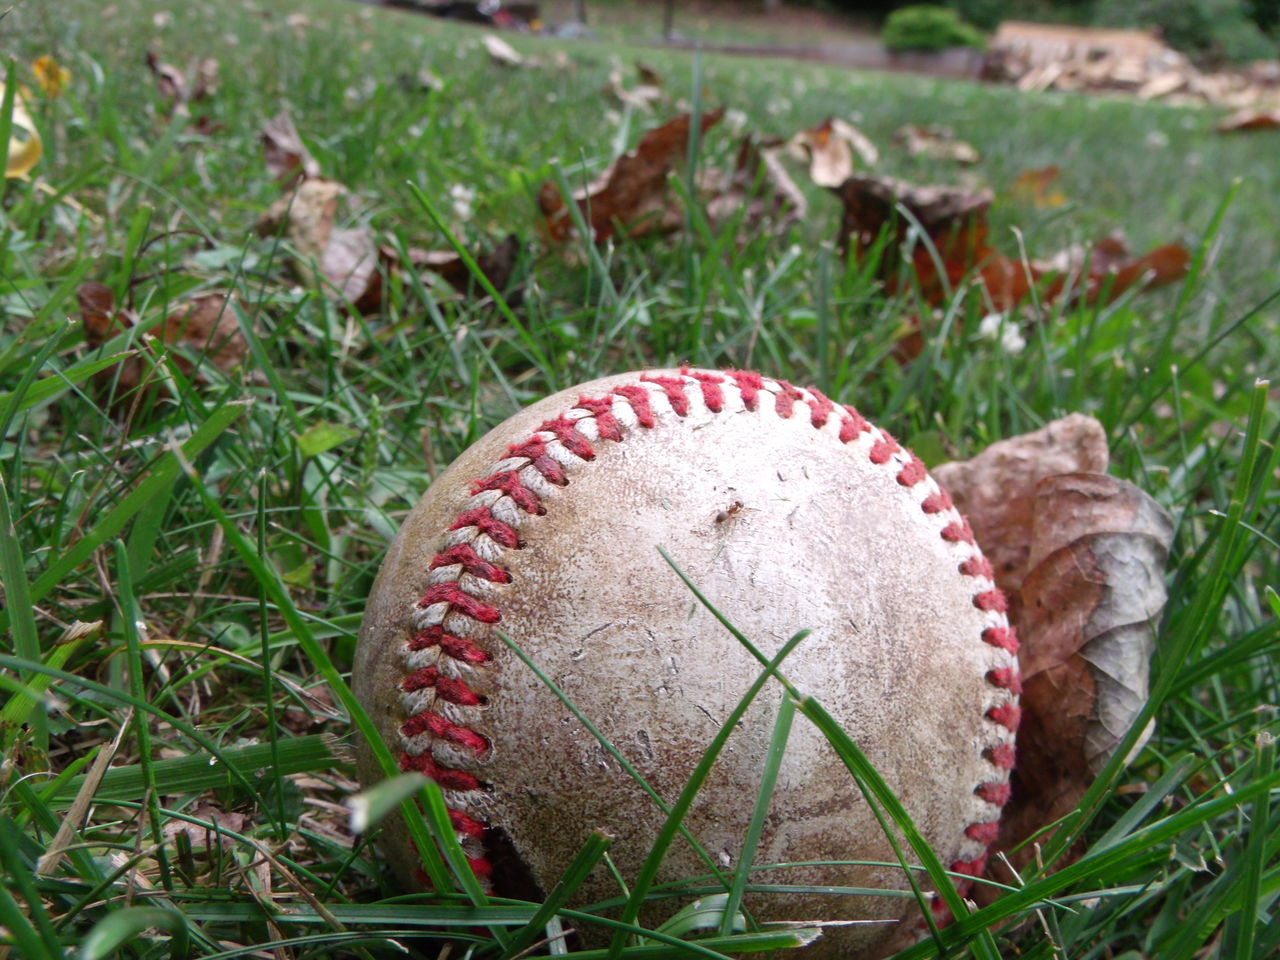 Home Run #ballislife #baseball Close-up Field Focus On Foreground Grass Grassy Growth Nature Outdoors Plant